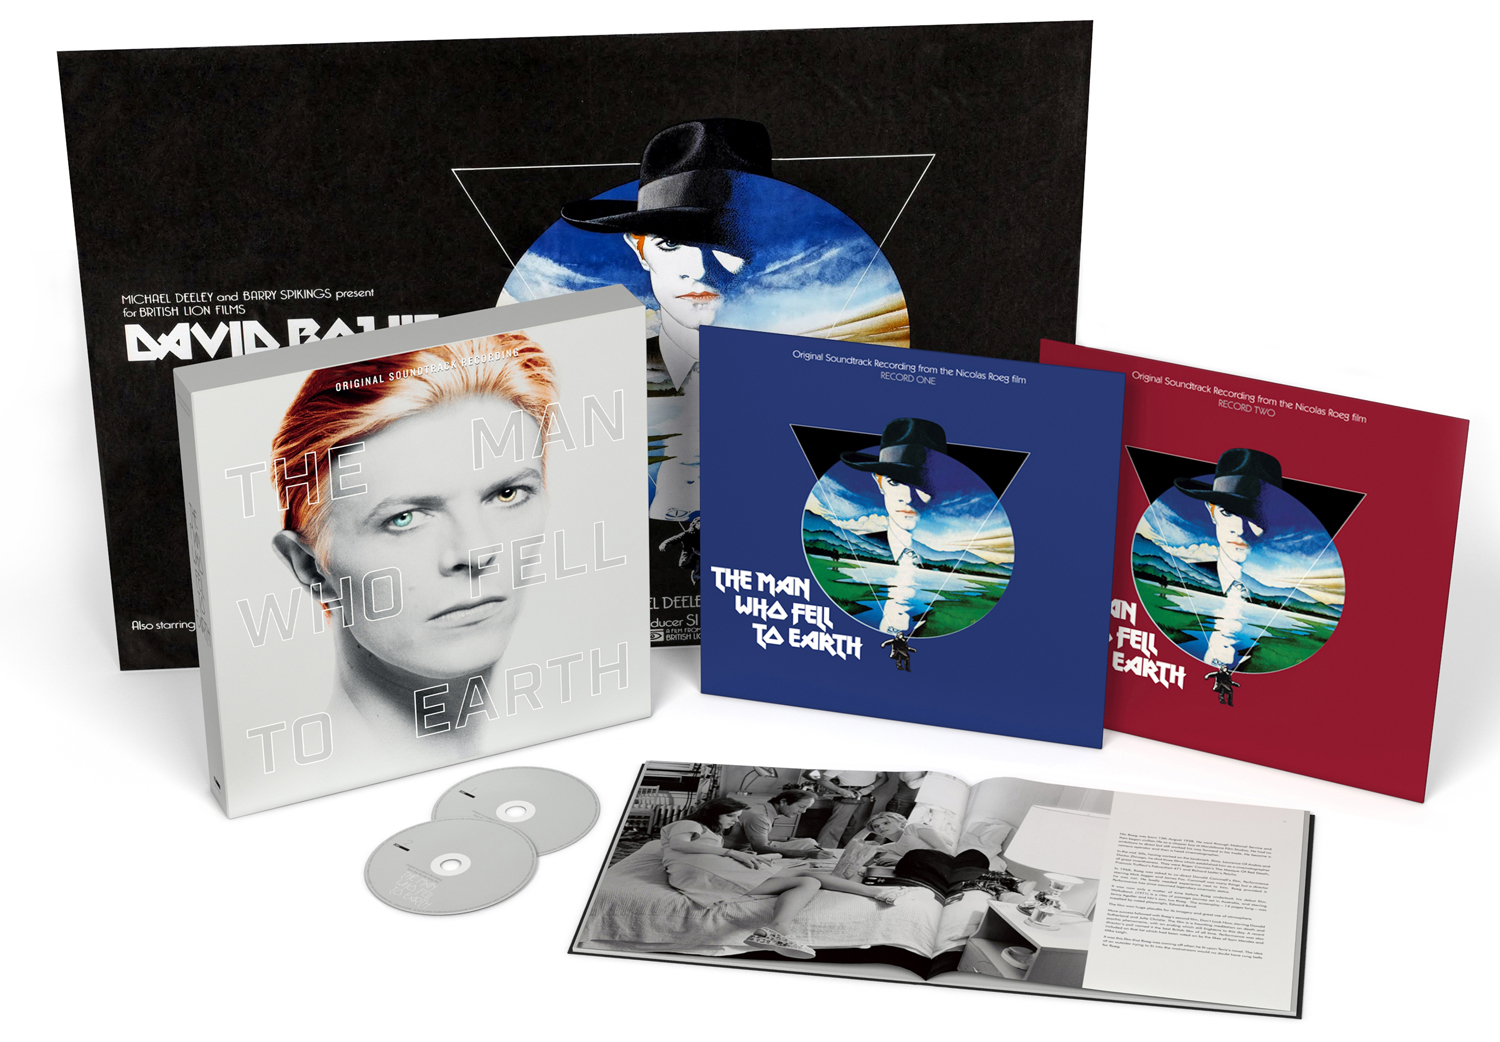 Man Who Fell To Earth '3D' packshot